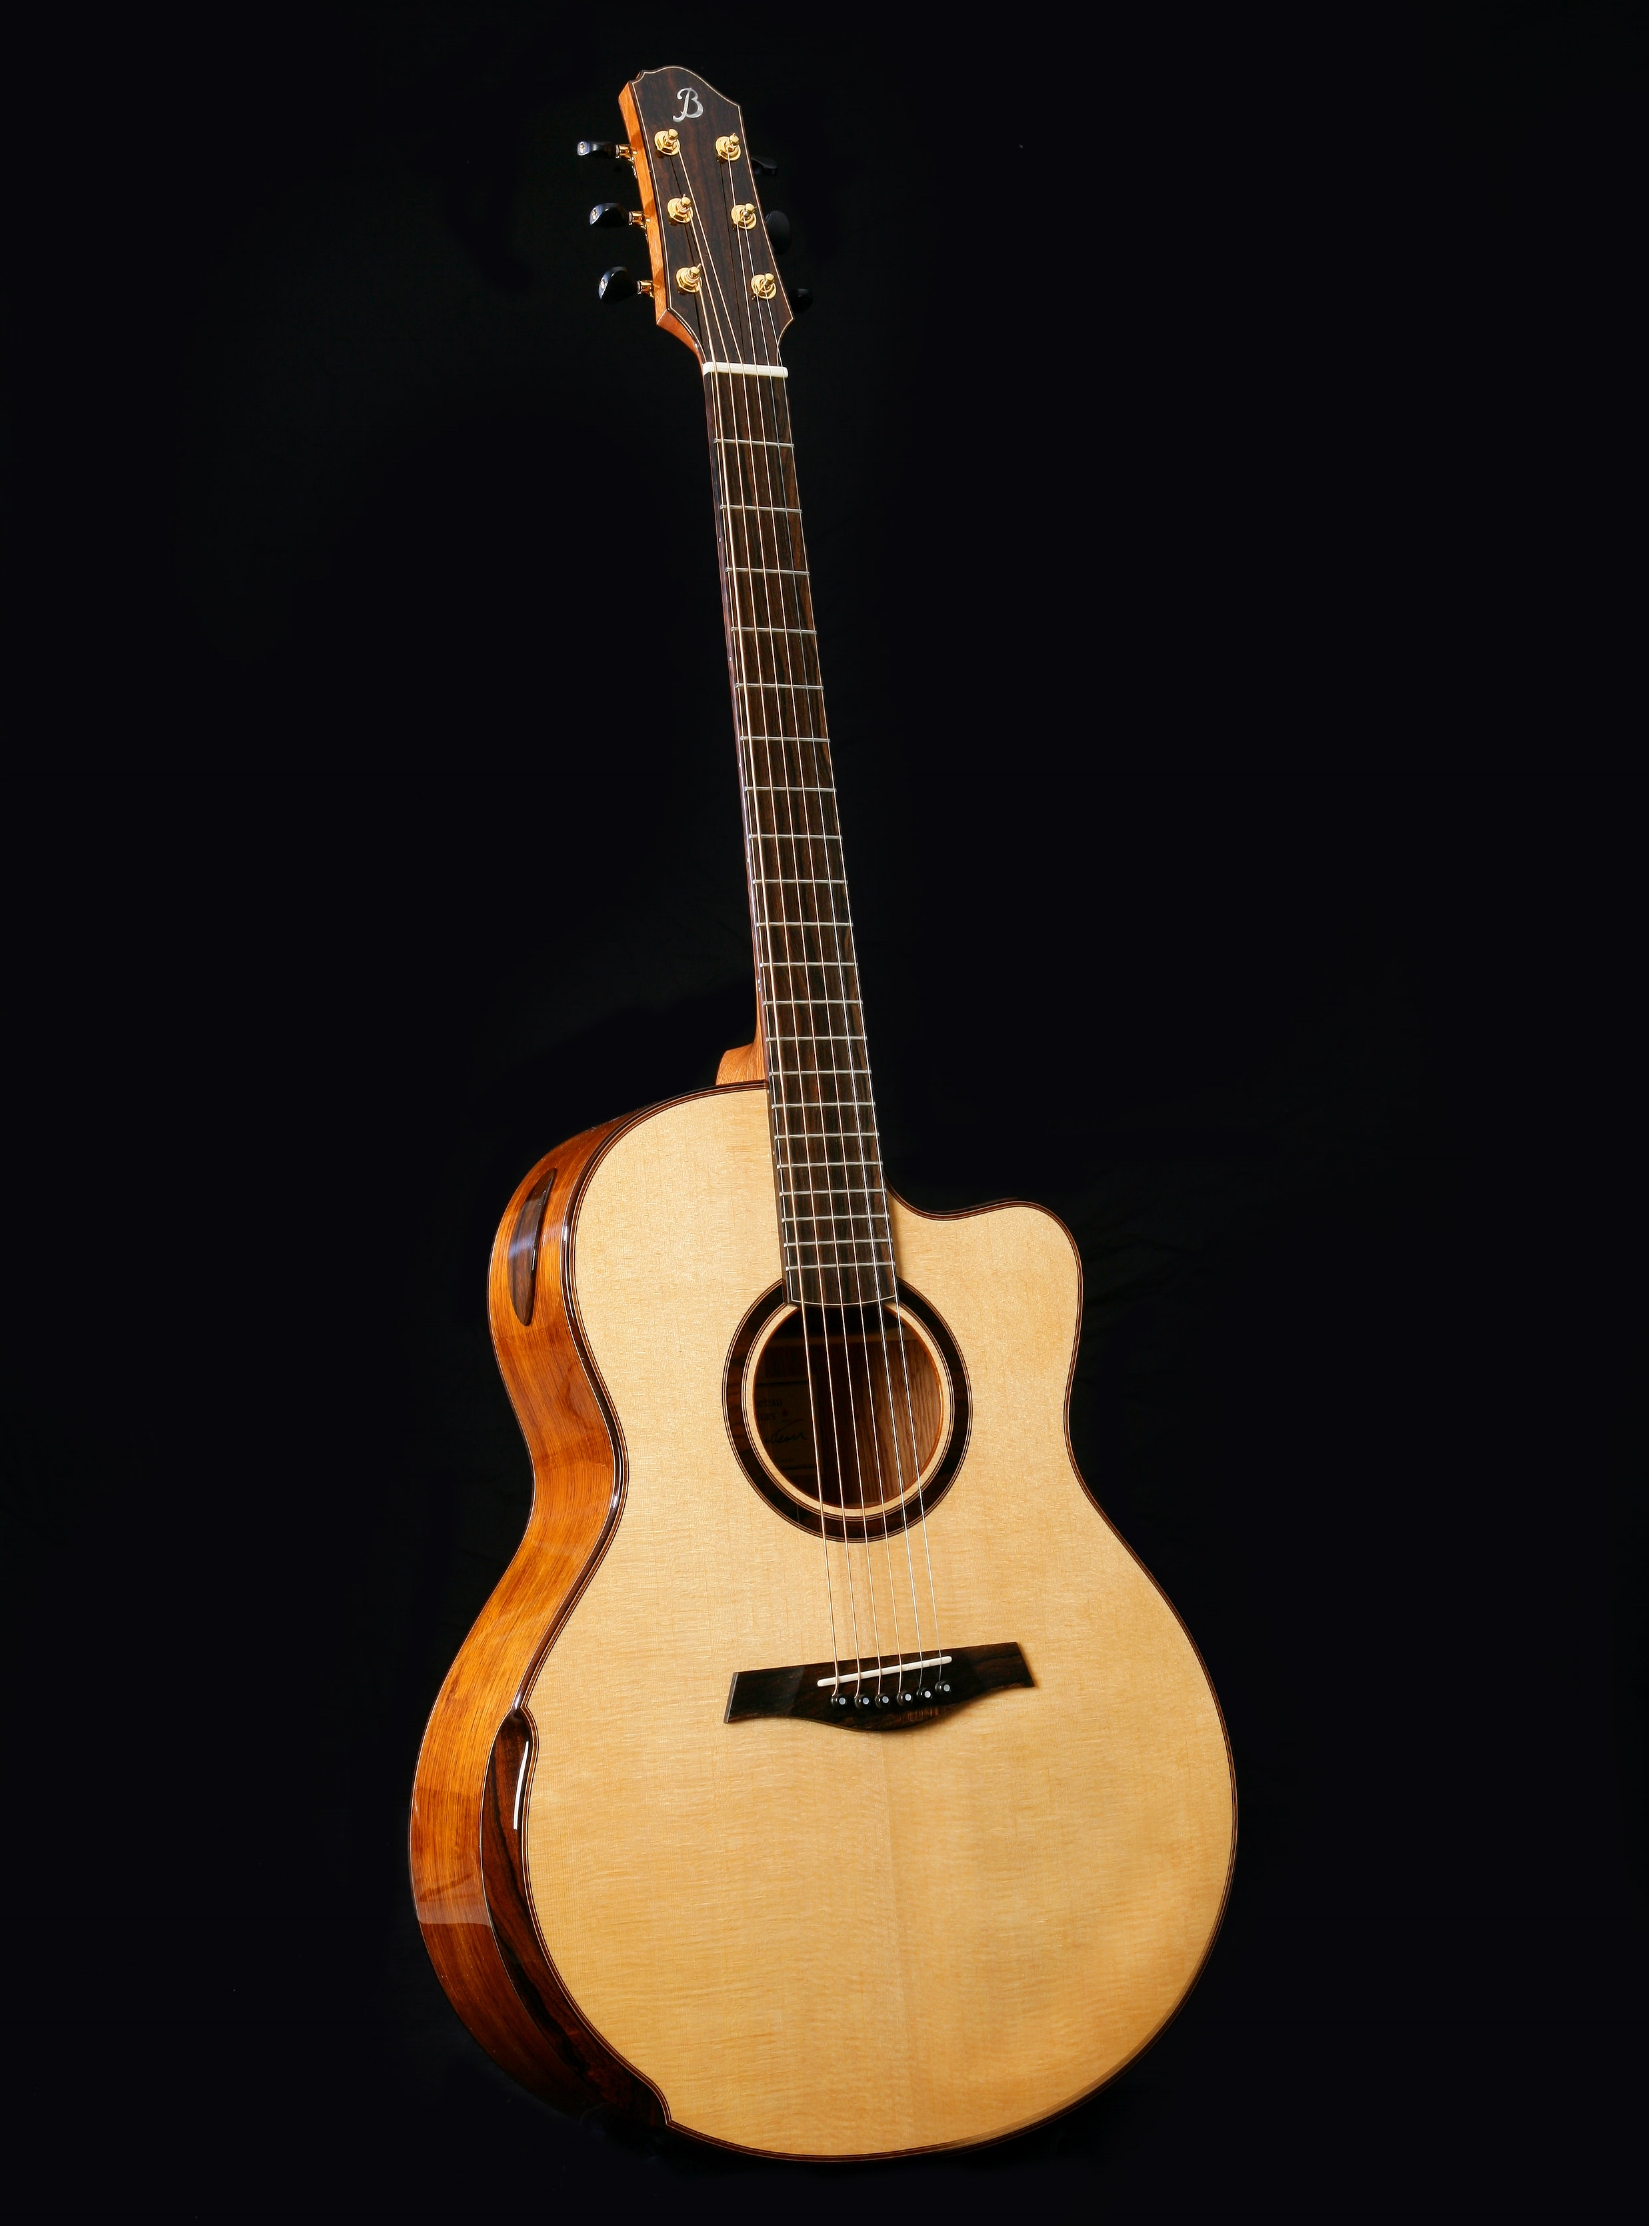 Concert Standard - I've been building and developing this model since the late 1970s and it continues to be one of my most popular guitars. Genuinely versatile, it is equally responsive to fingerpicking or strumming.DimensionsUpper Bout: 11 1/4